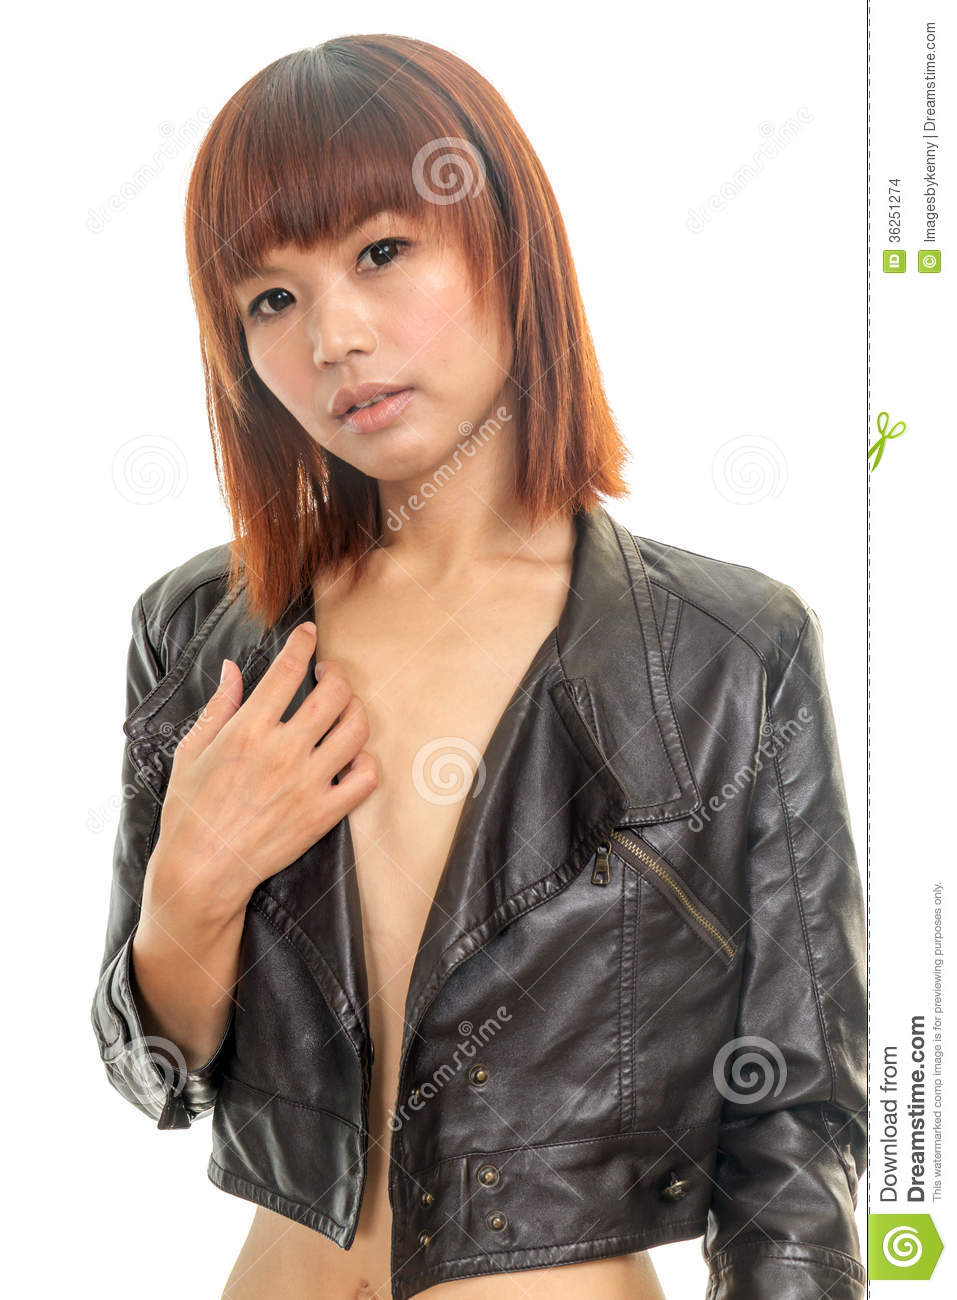 Sexy leather jacket for woman